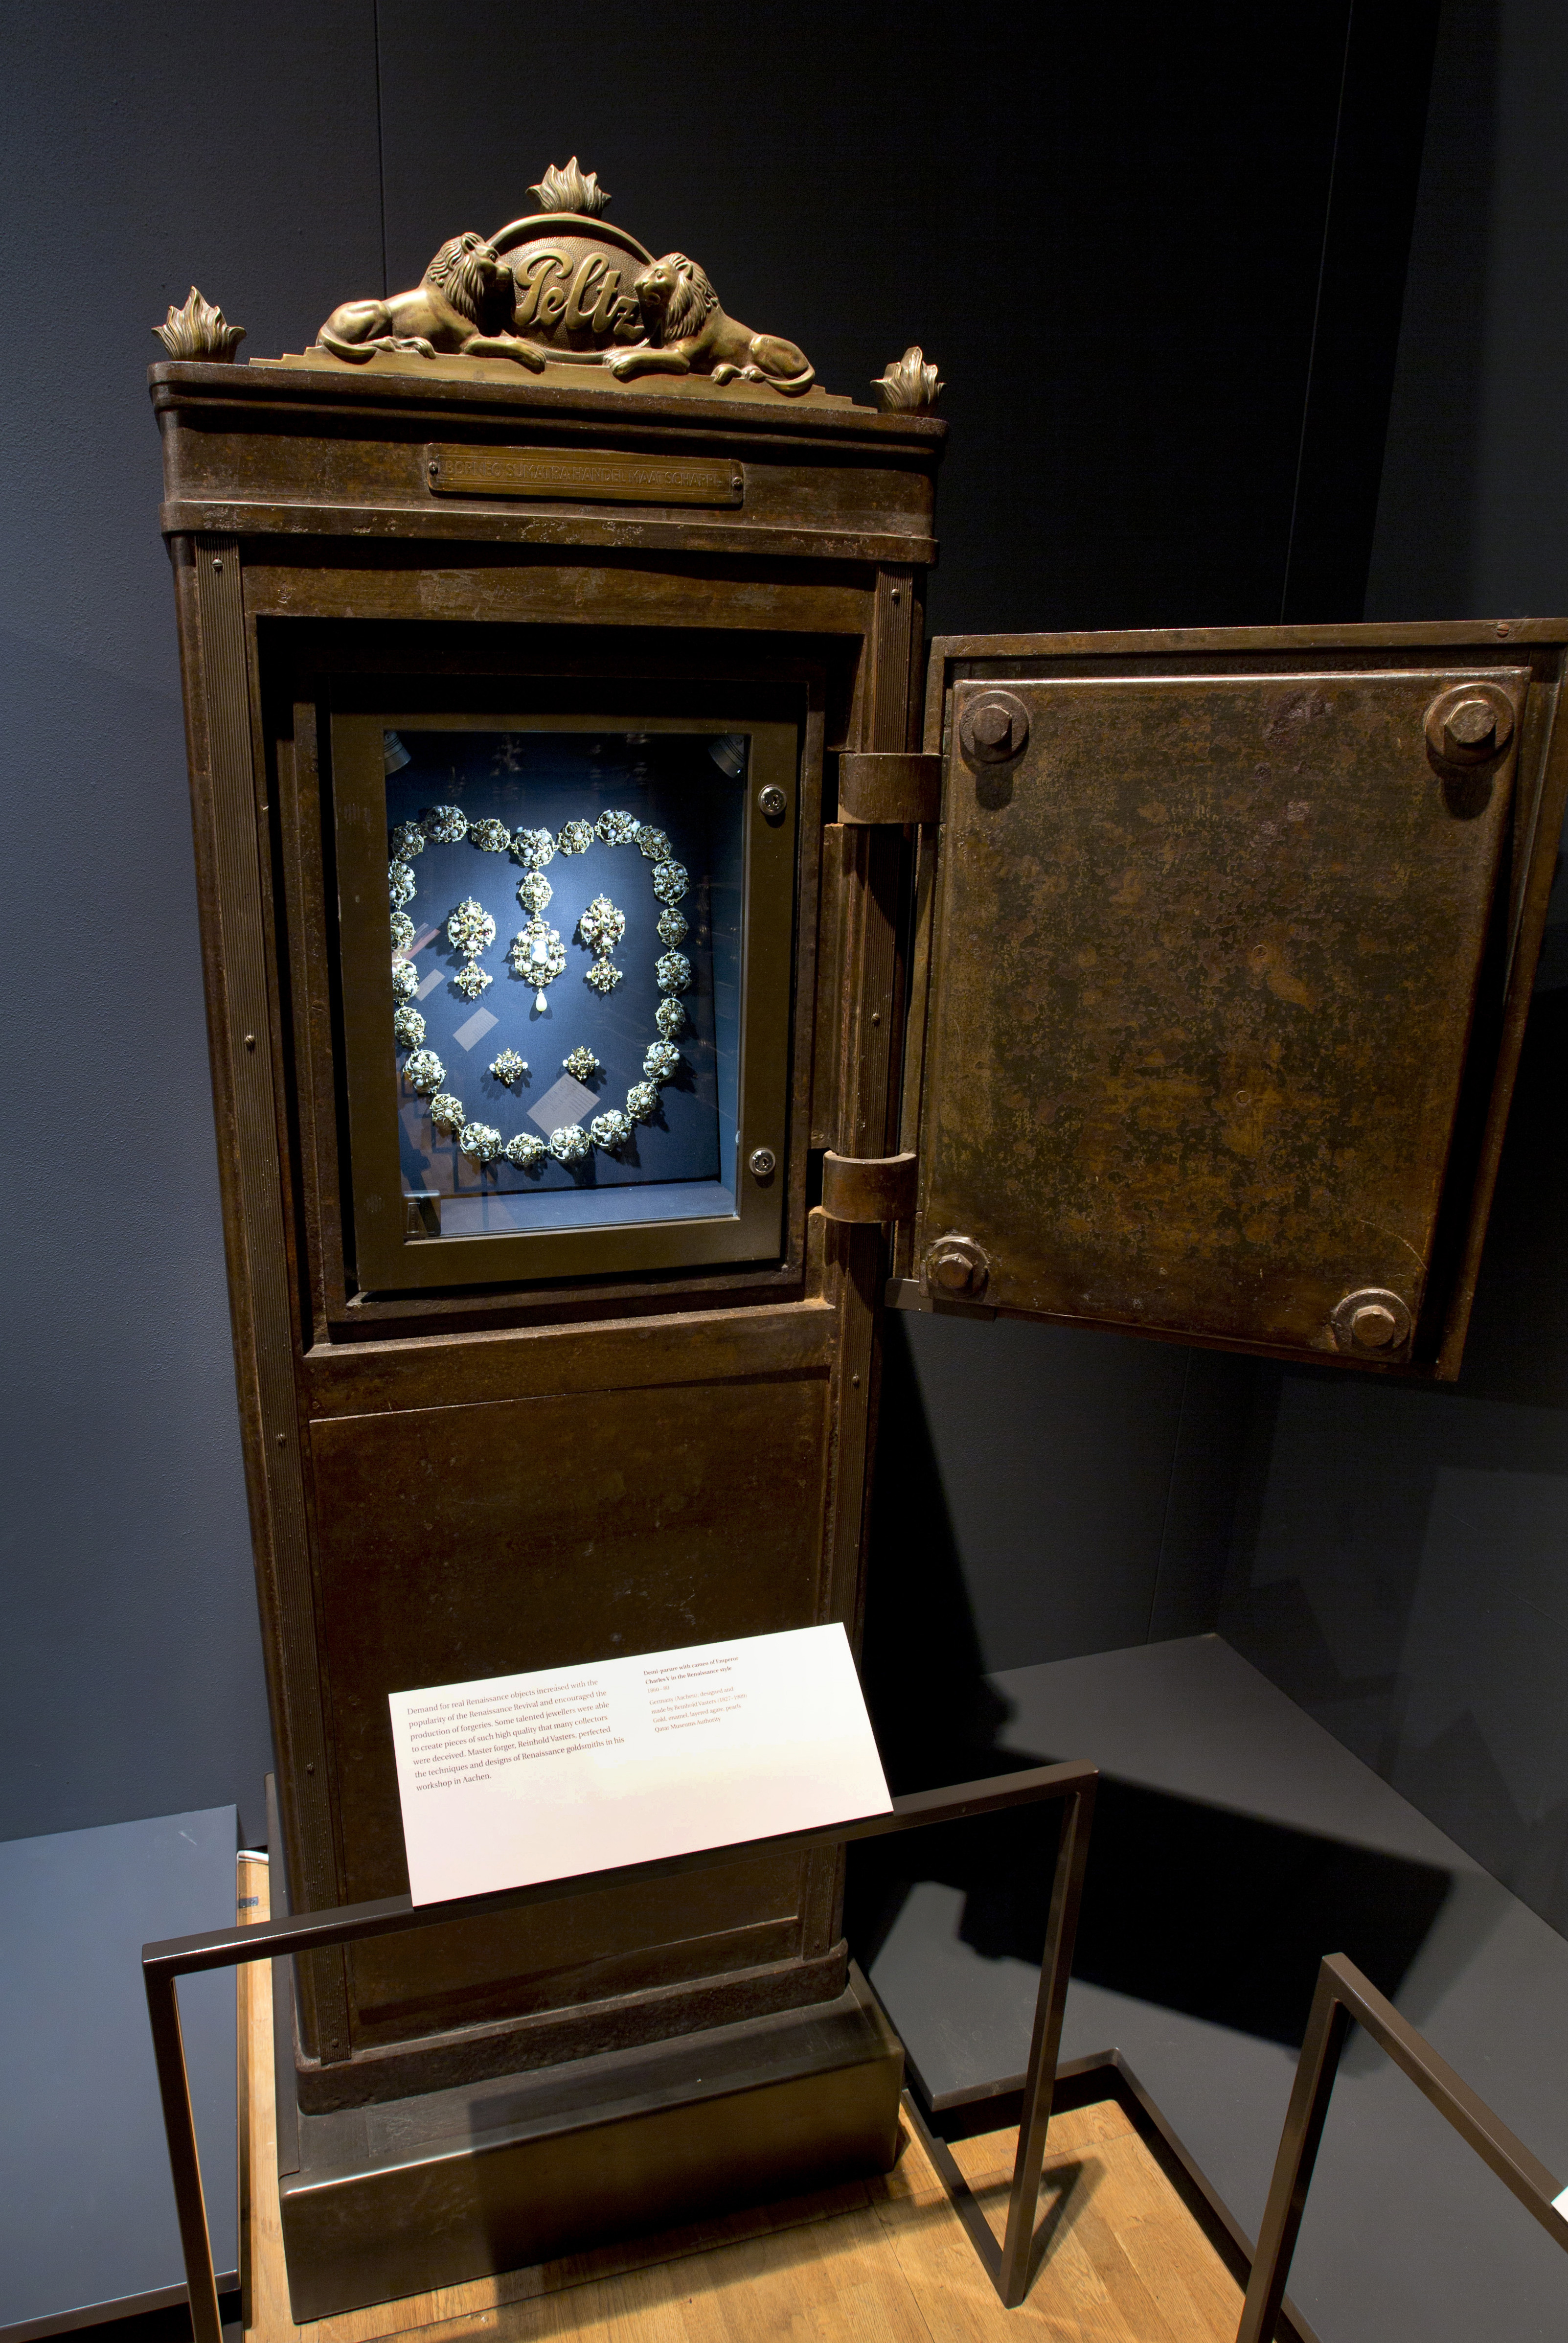 Installation image of 'Pearls' © Victoria and Albert Museum